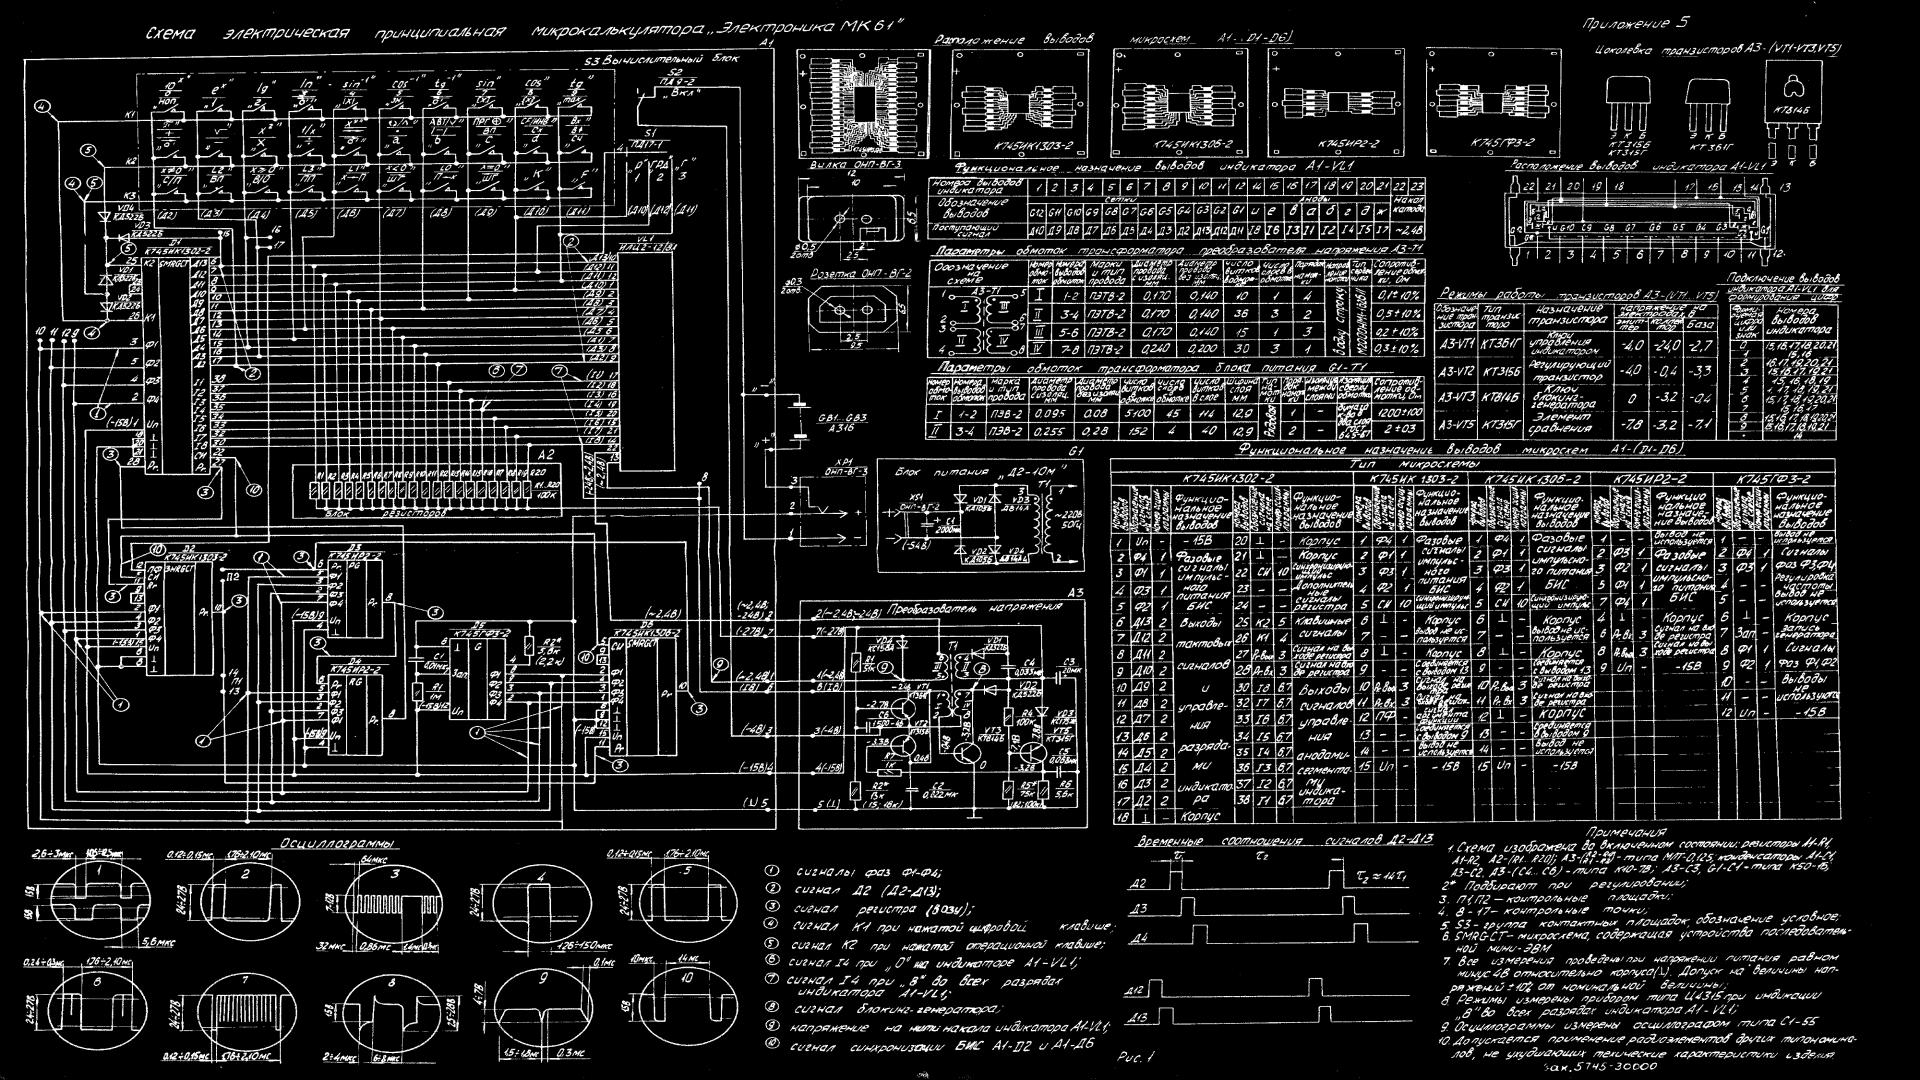 1920x1080 Schematic HD Wallpapers | Backgrounds - Wallpaper Abyss. Download  · 1920x1080 Circuit diagram wallpaper ...